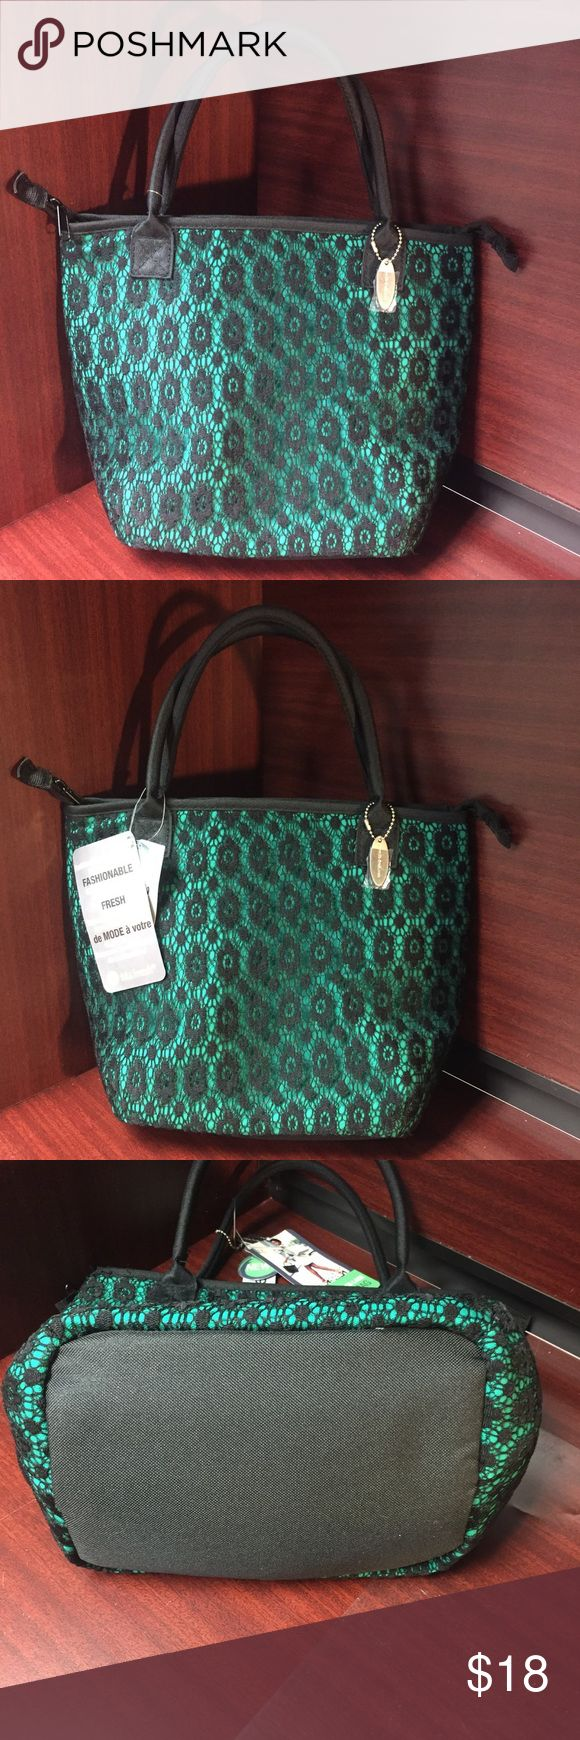 FIT & FRESH Lace Lunchbag Luxurious Lace Chicago Insulated Lunch Bag. Two sturdy handles, long enough to wear over the shoulder. Interior mesh pocket for keys, snack or utensils. Extra thick insulation to keep contents cool. Ice pack included. Brand new, with tags! Fit & Fresh Bags Travel Bags